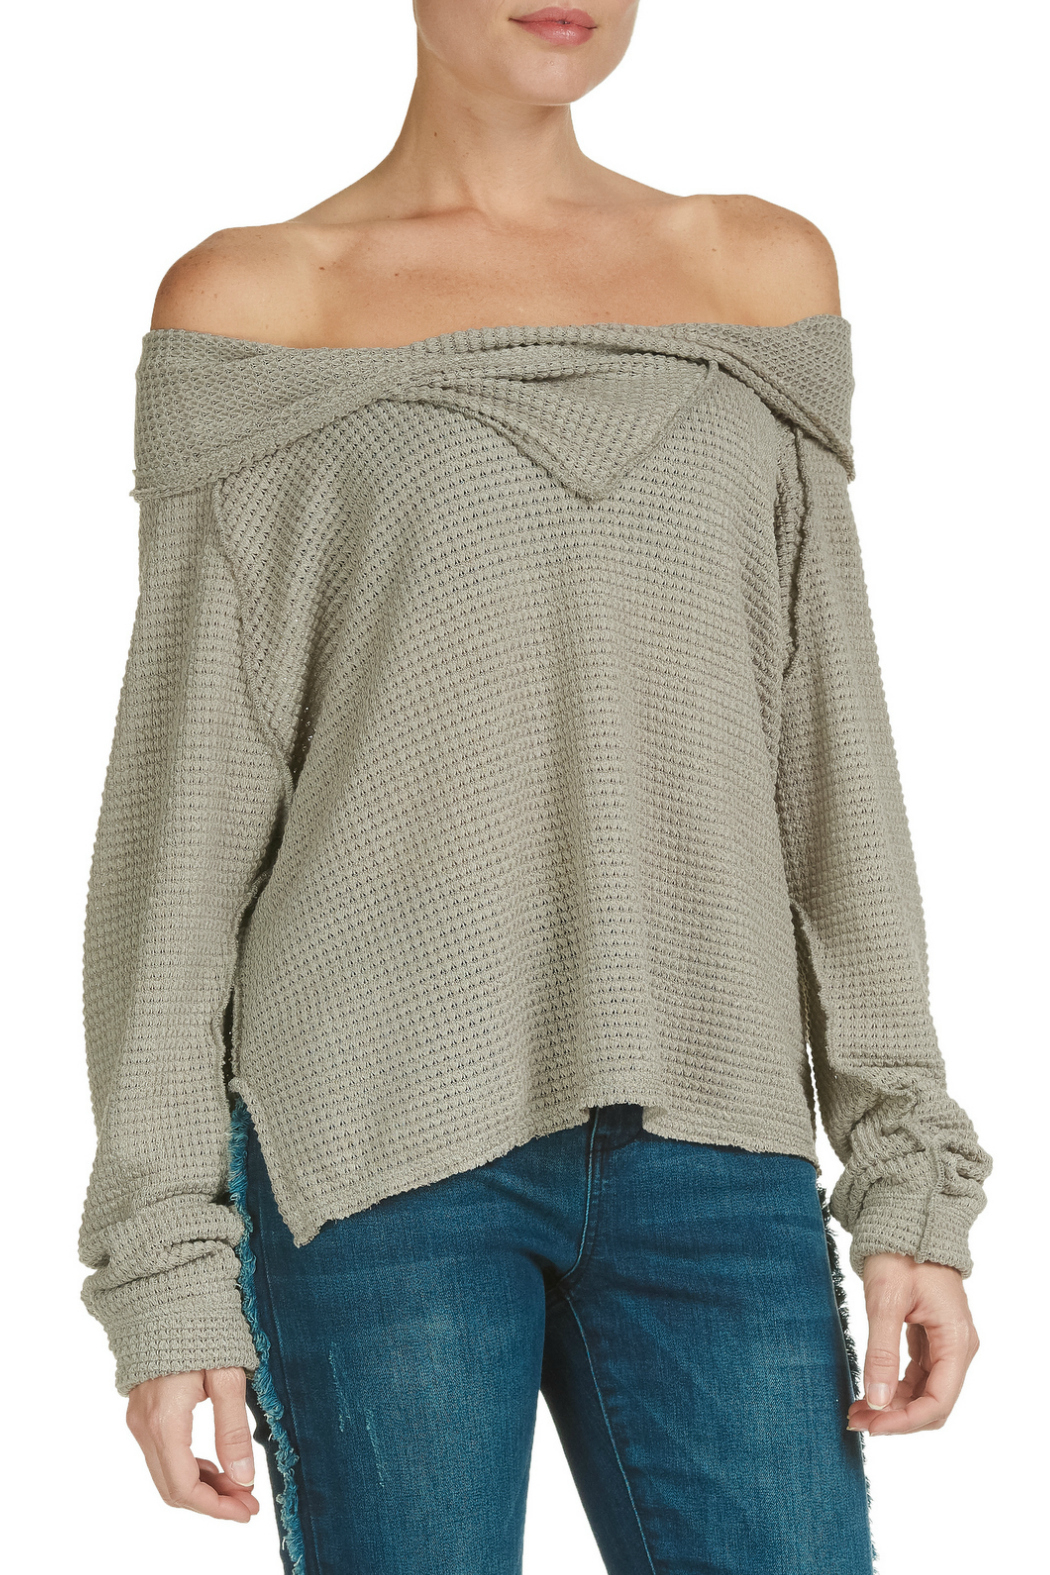 Elan Off the Shoulder Long Sleeve Top - Front Cropped Image